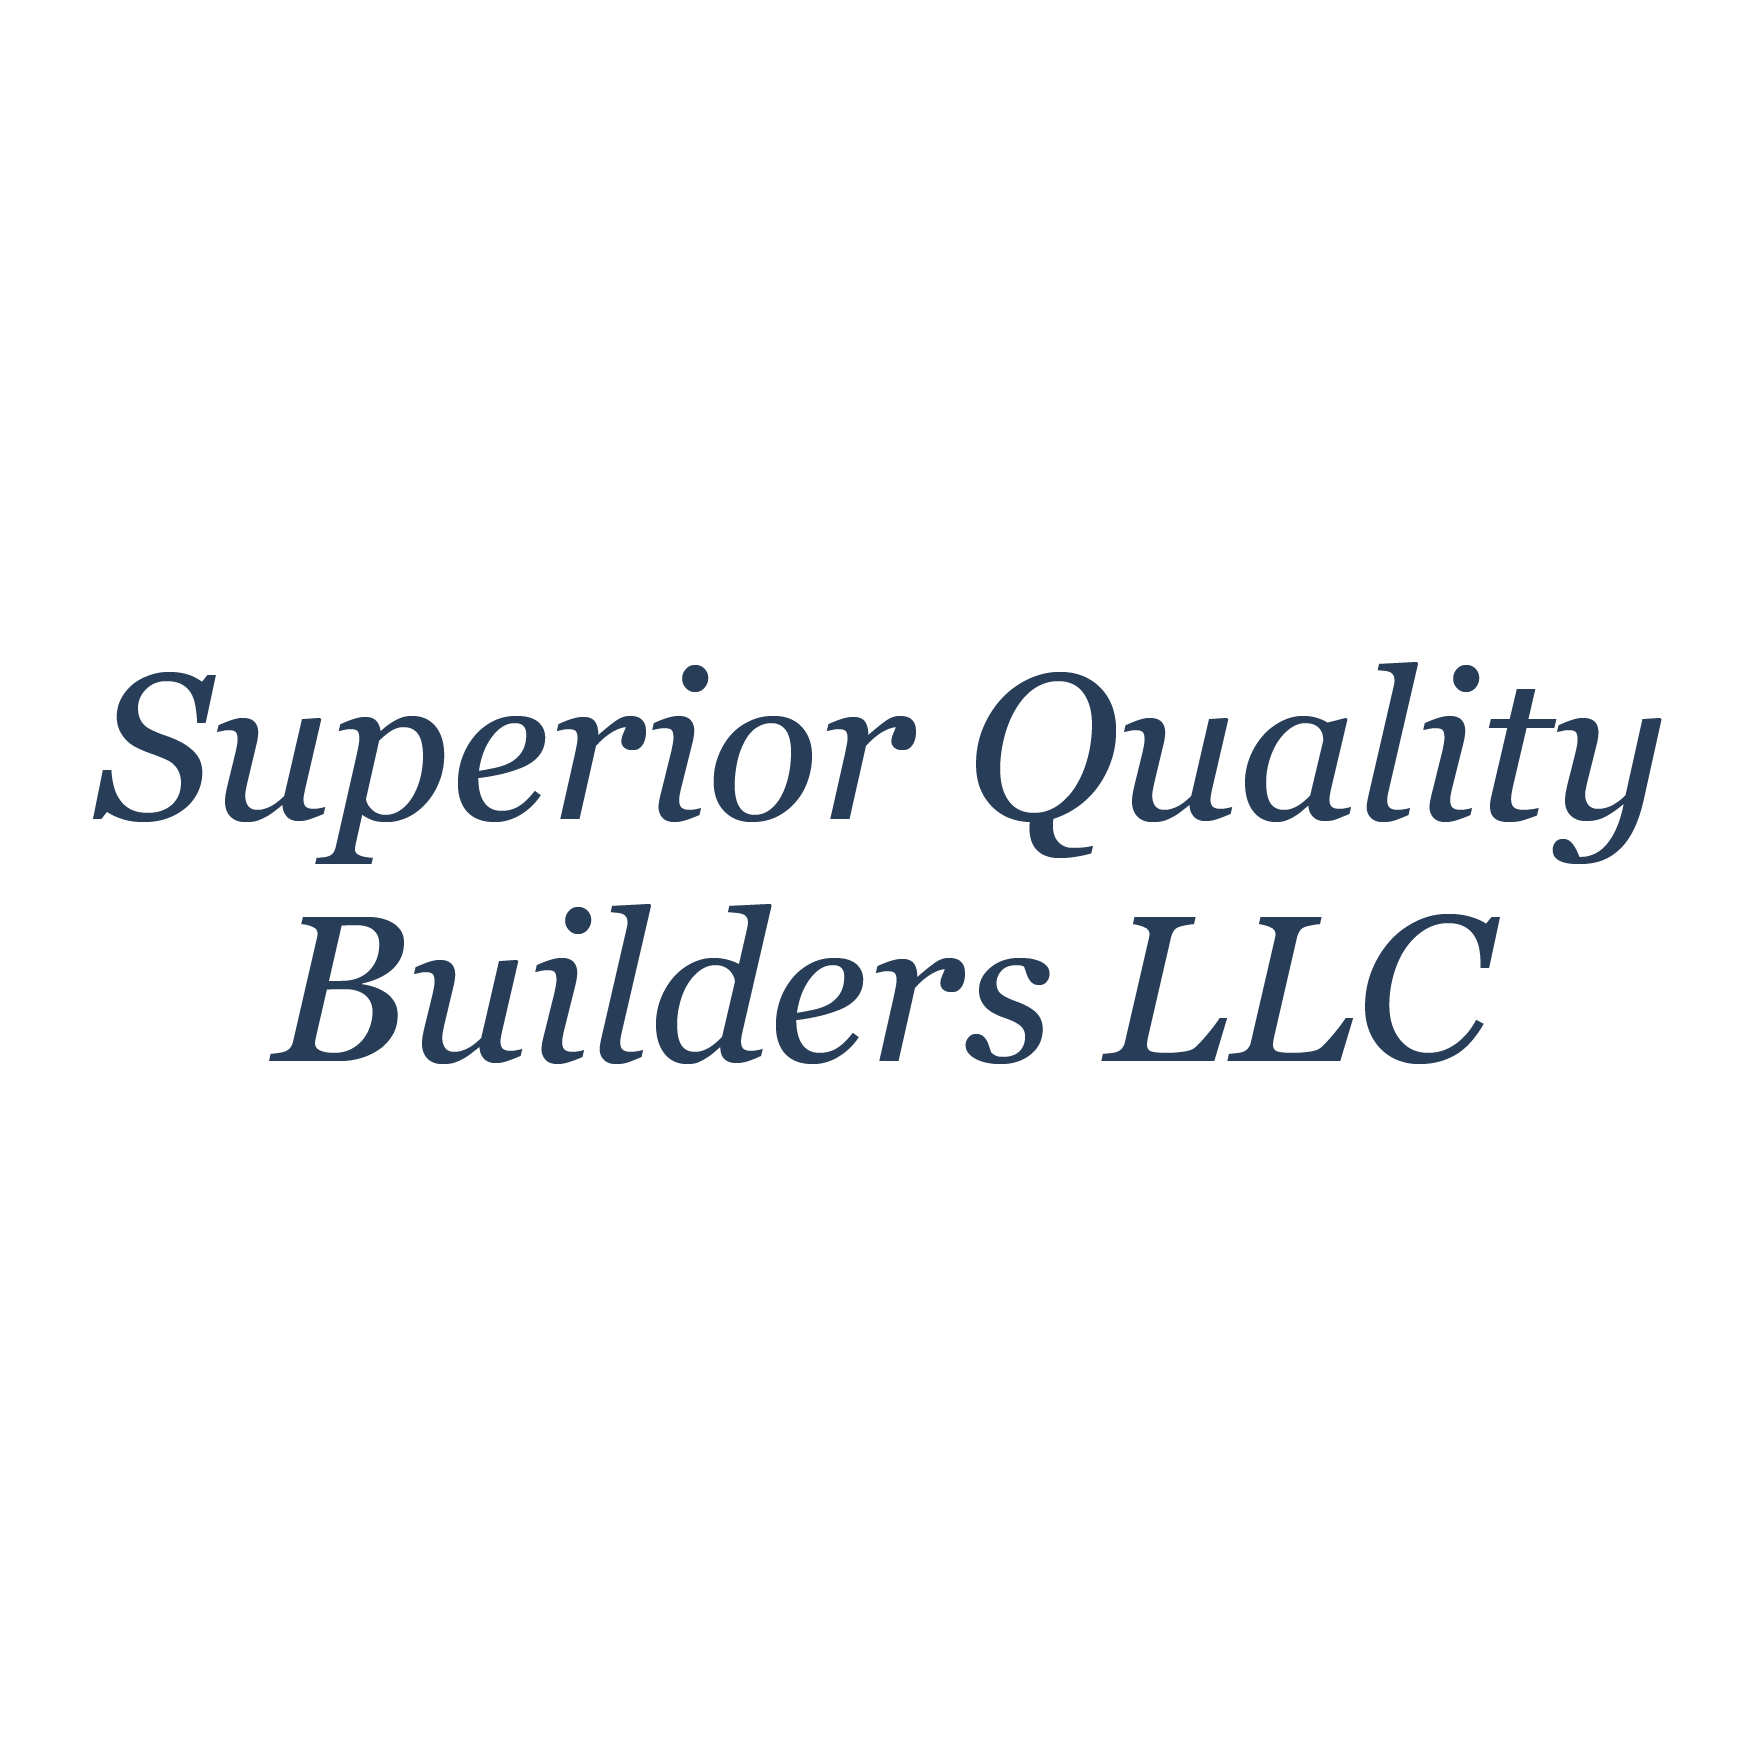 Superior Quality Builders LLC - North Ridgeville, OH - Home Centers